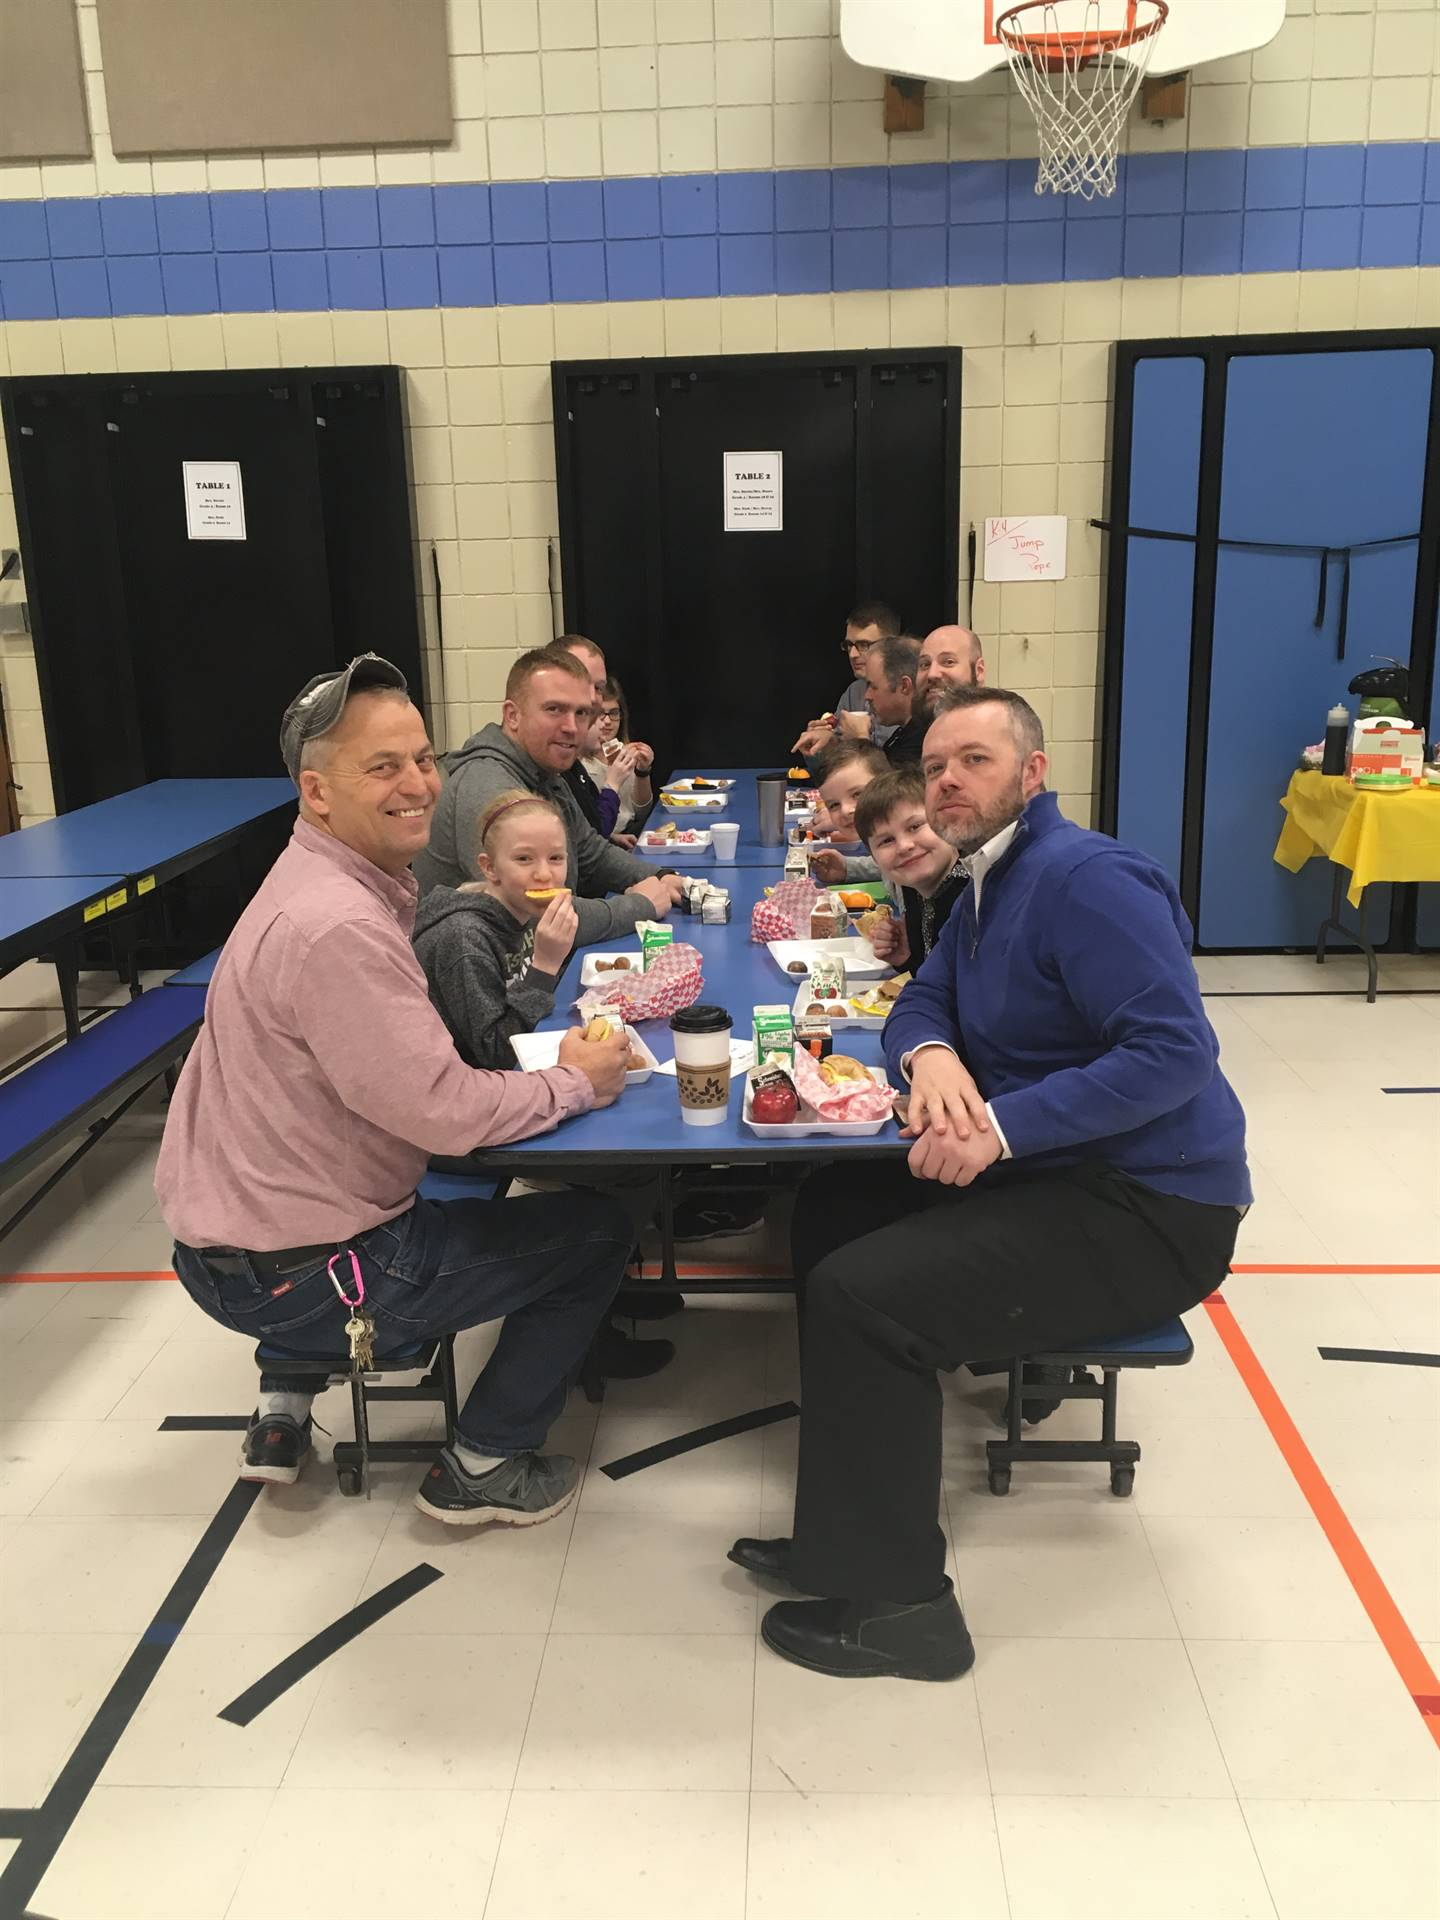 Students eating breakfast with Lincoln teachers